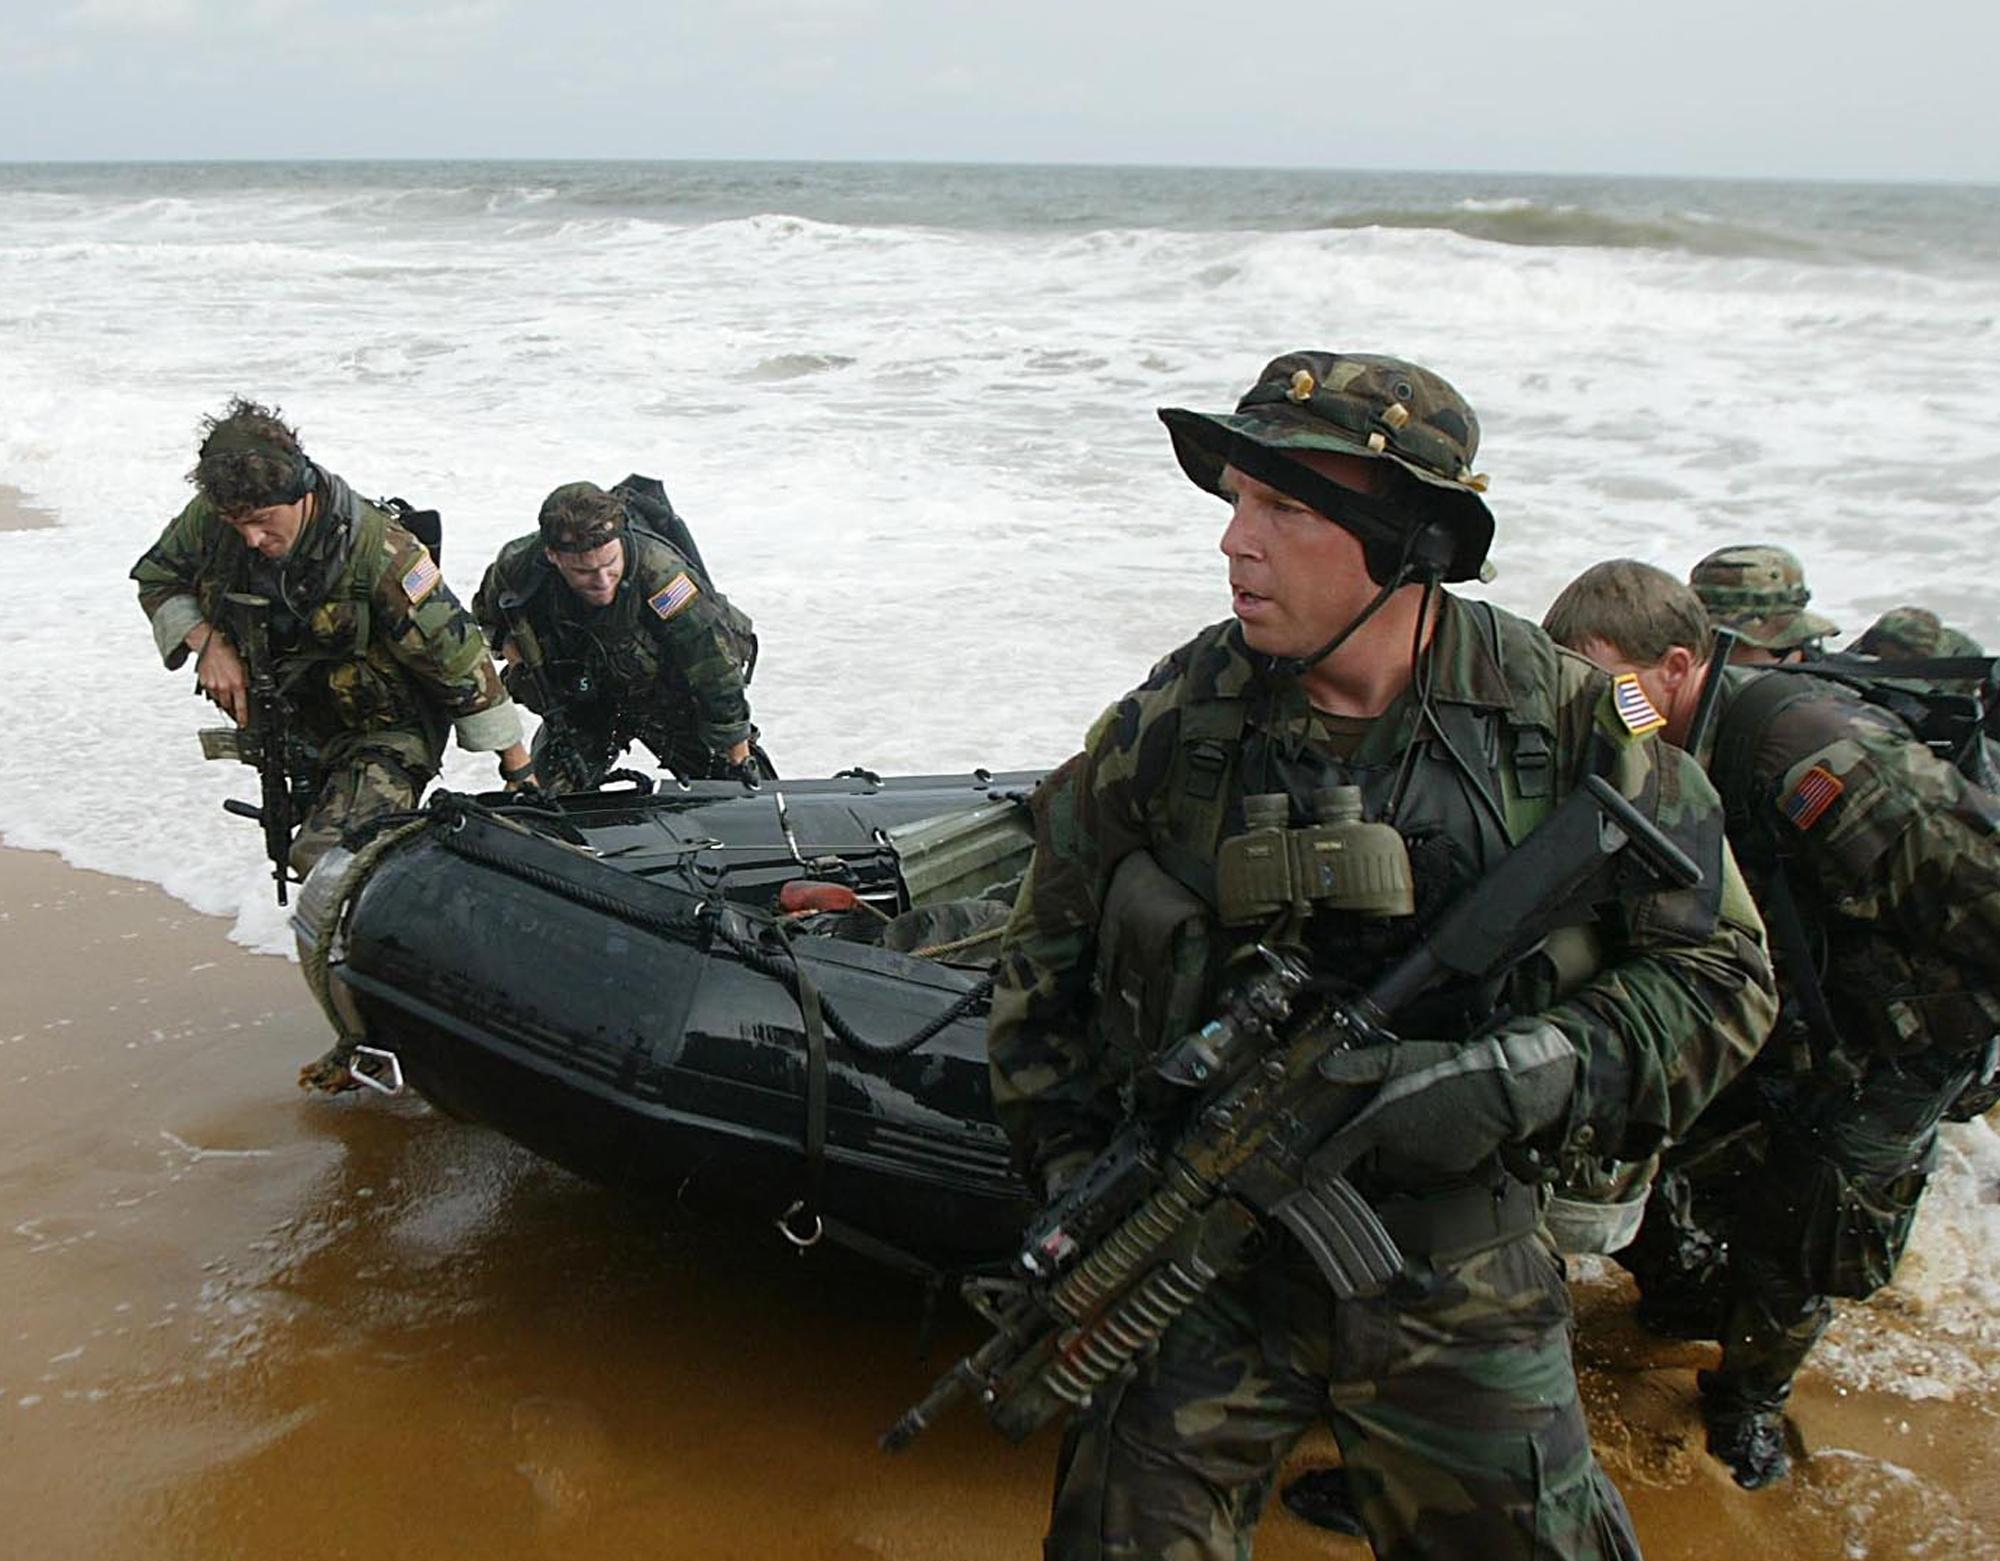 American Navy Seals Land On The Main Beach In Monrovia Liberia This Aug